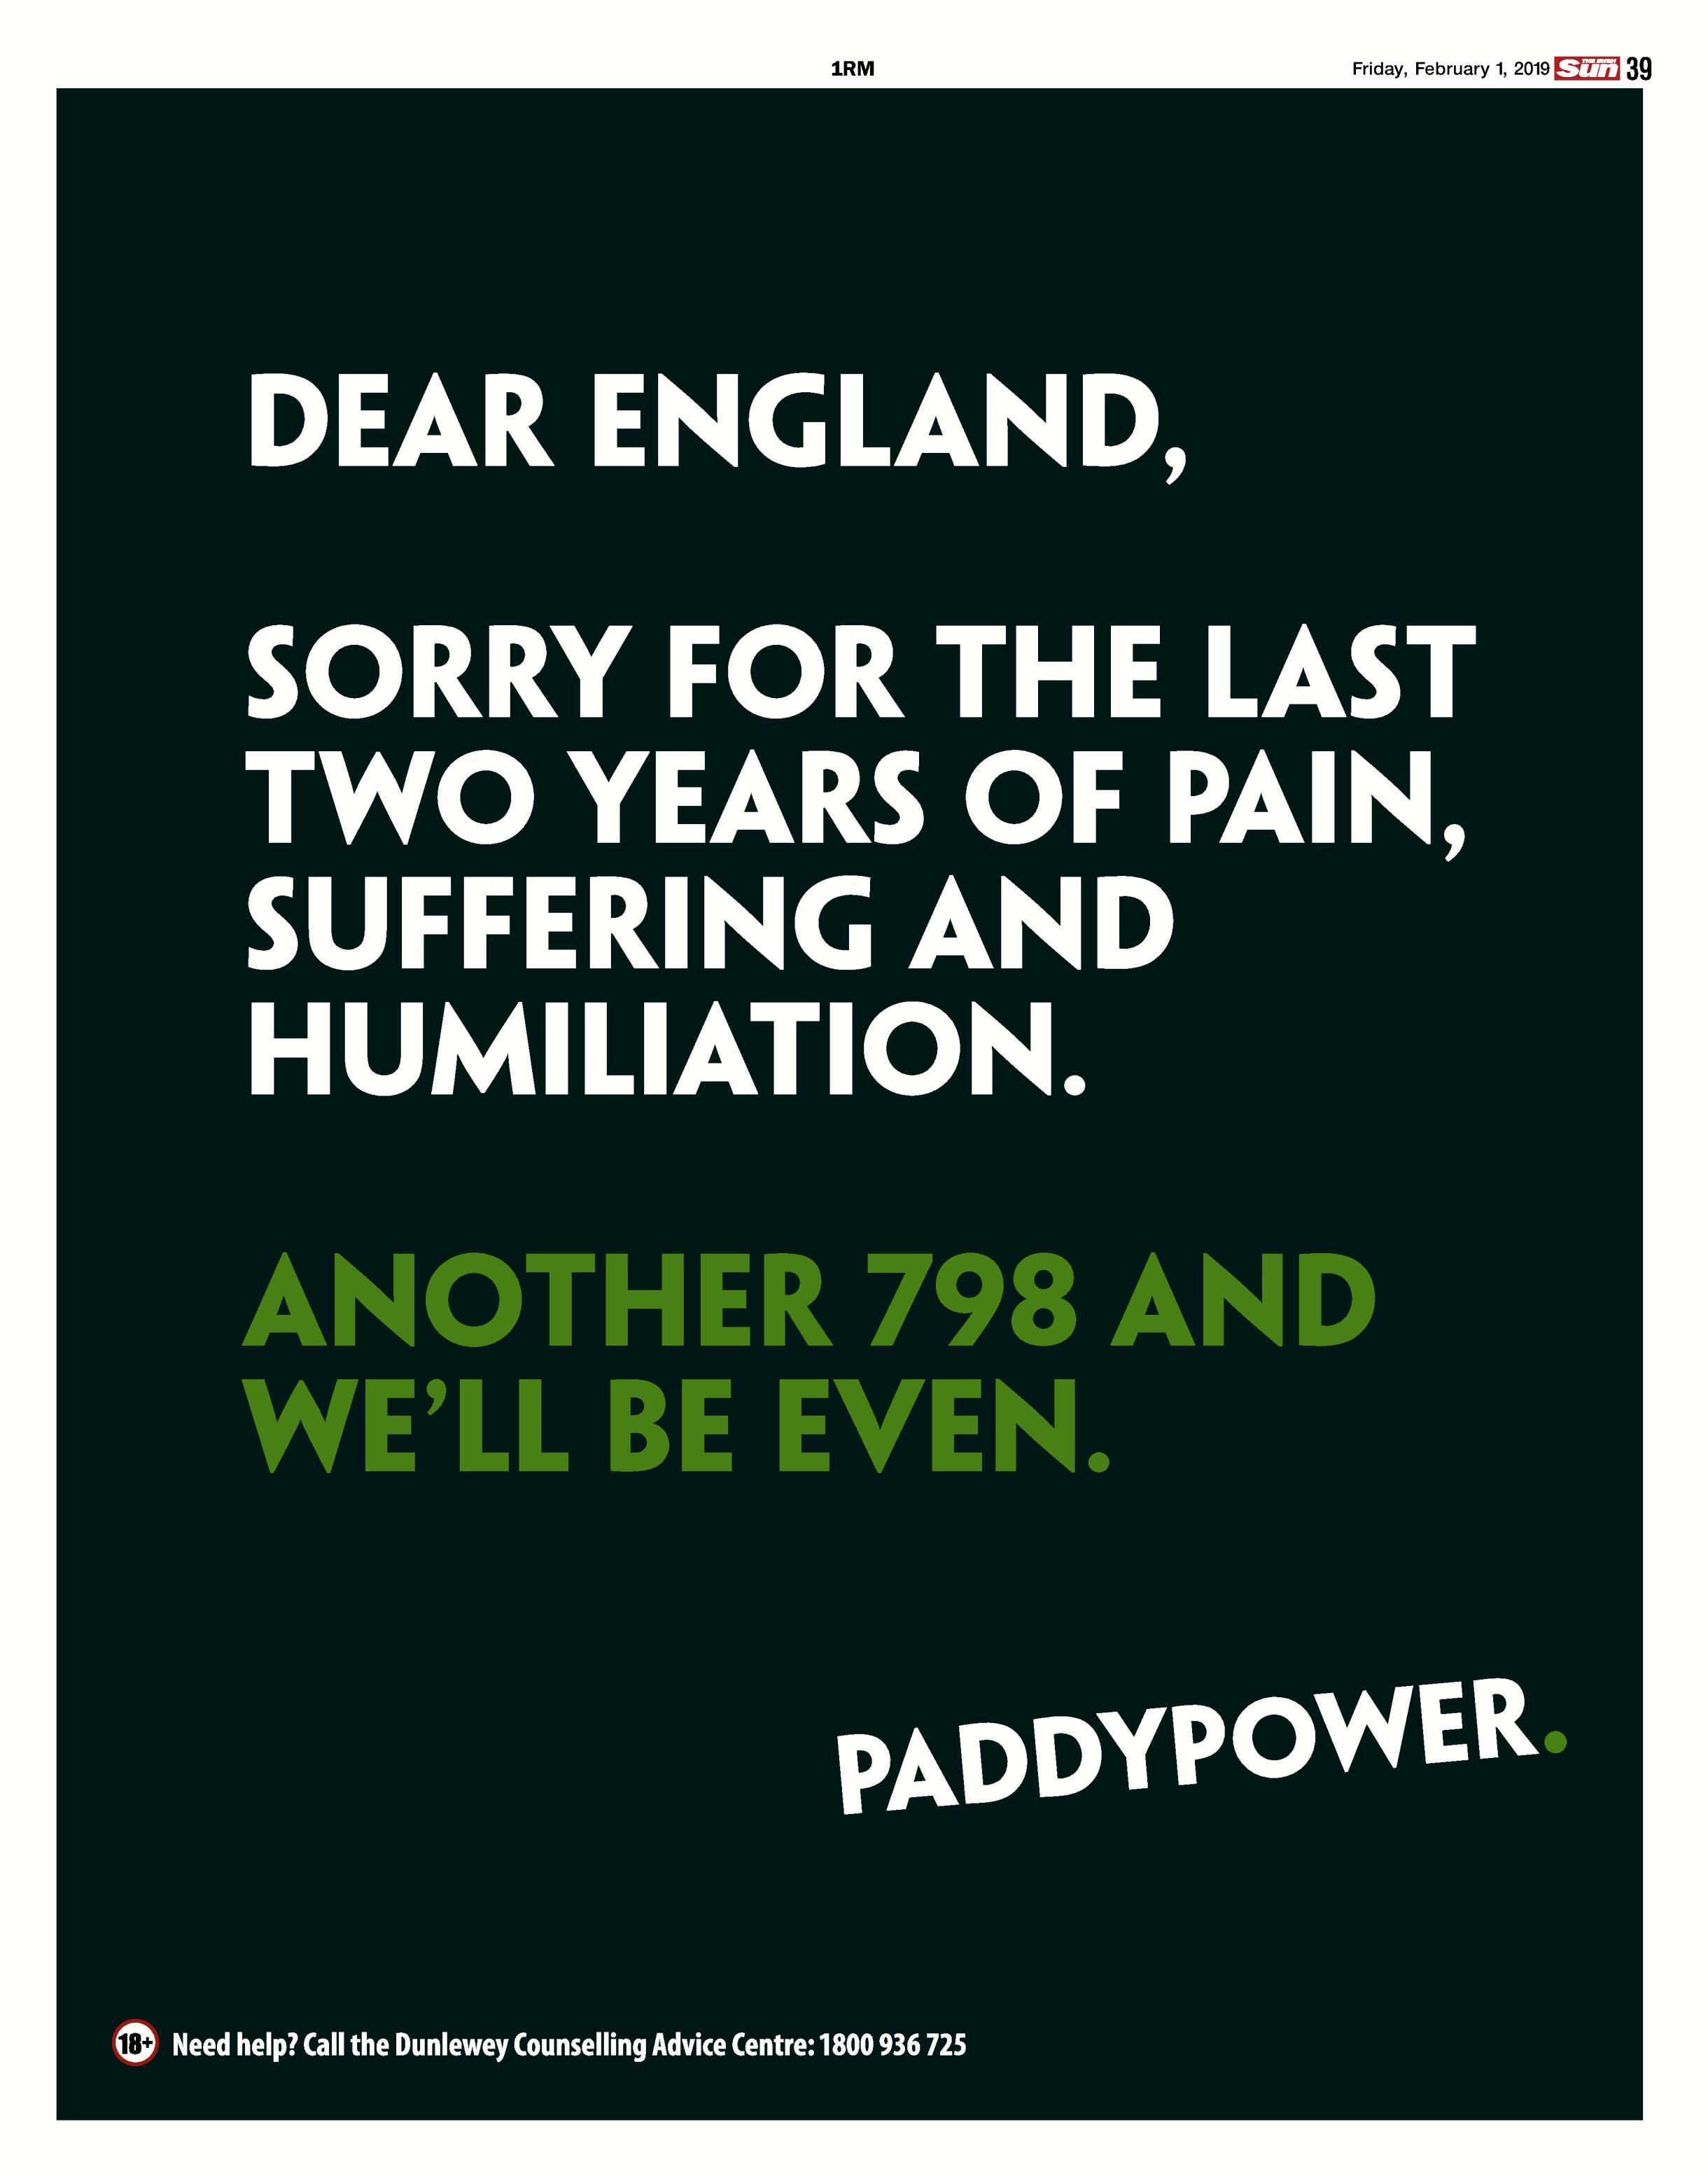 Paddy Power Receives Slap On Wrist After Racist Ad Complaints